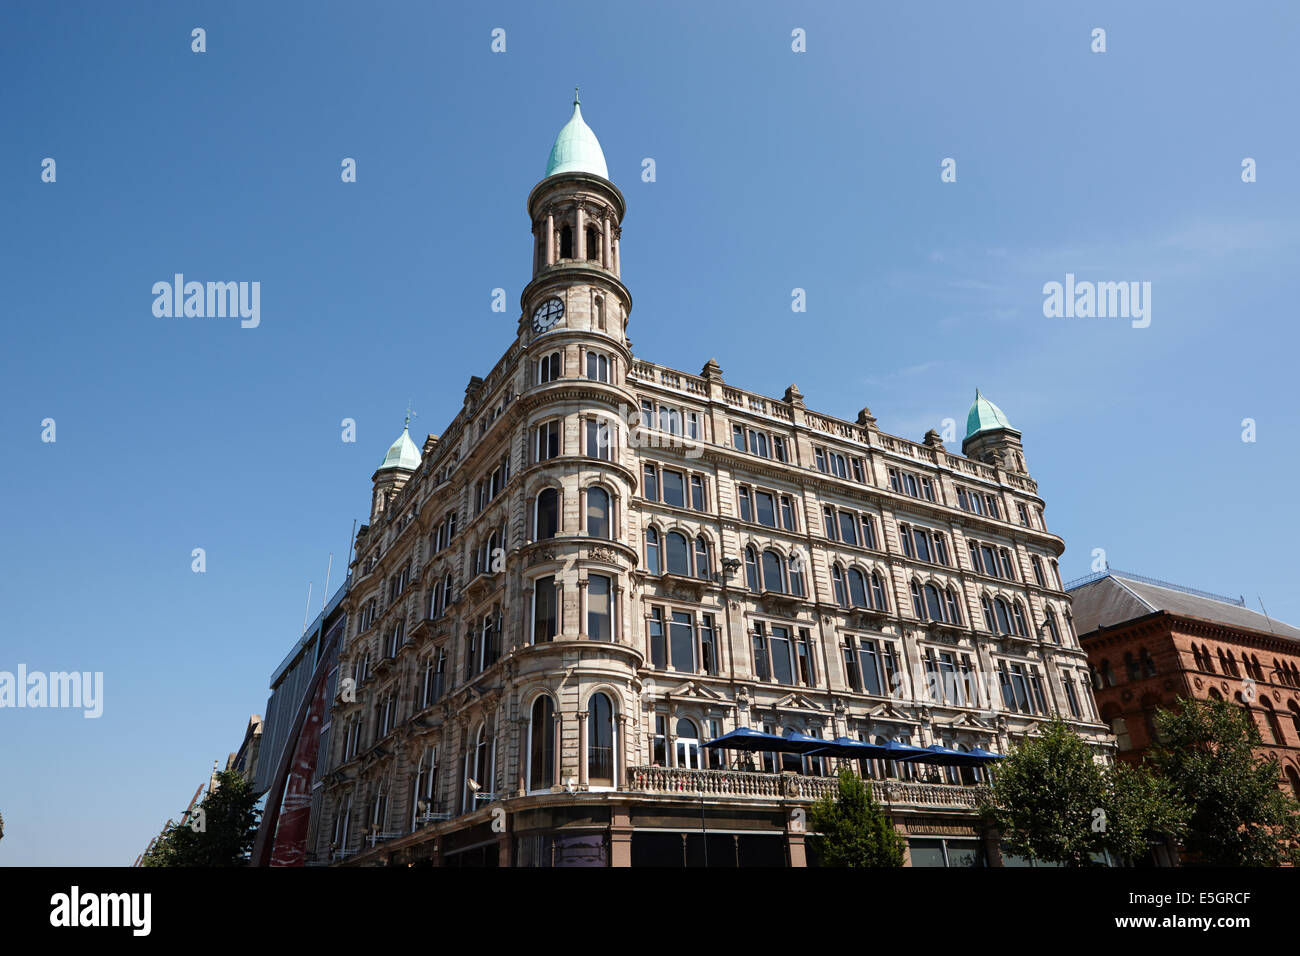 historic former robinsons and cleaver building donegall square north Belfast city centre - Stock Image